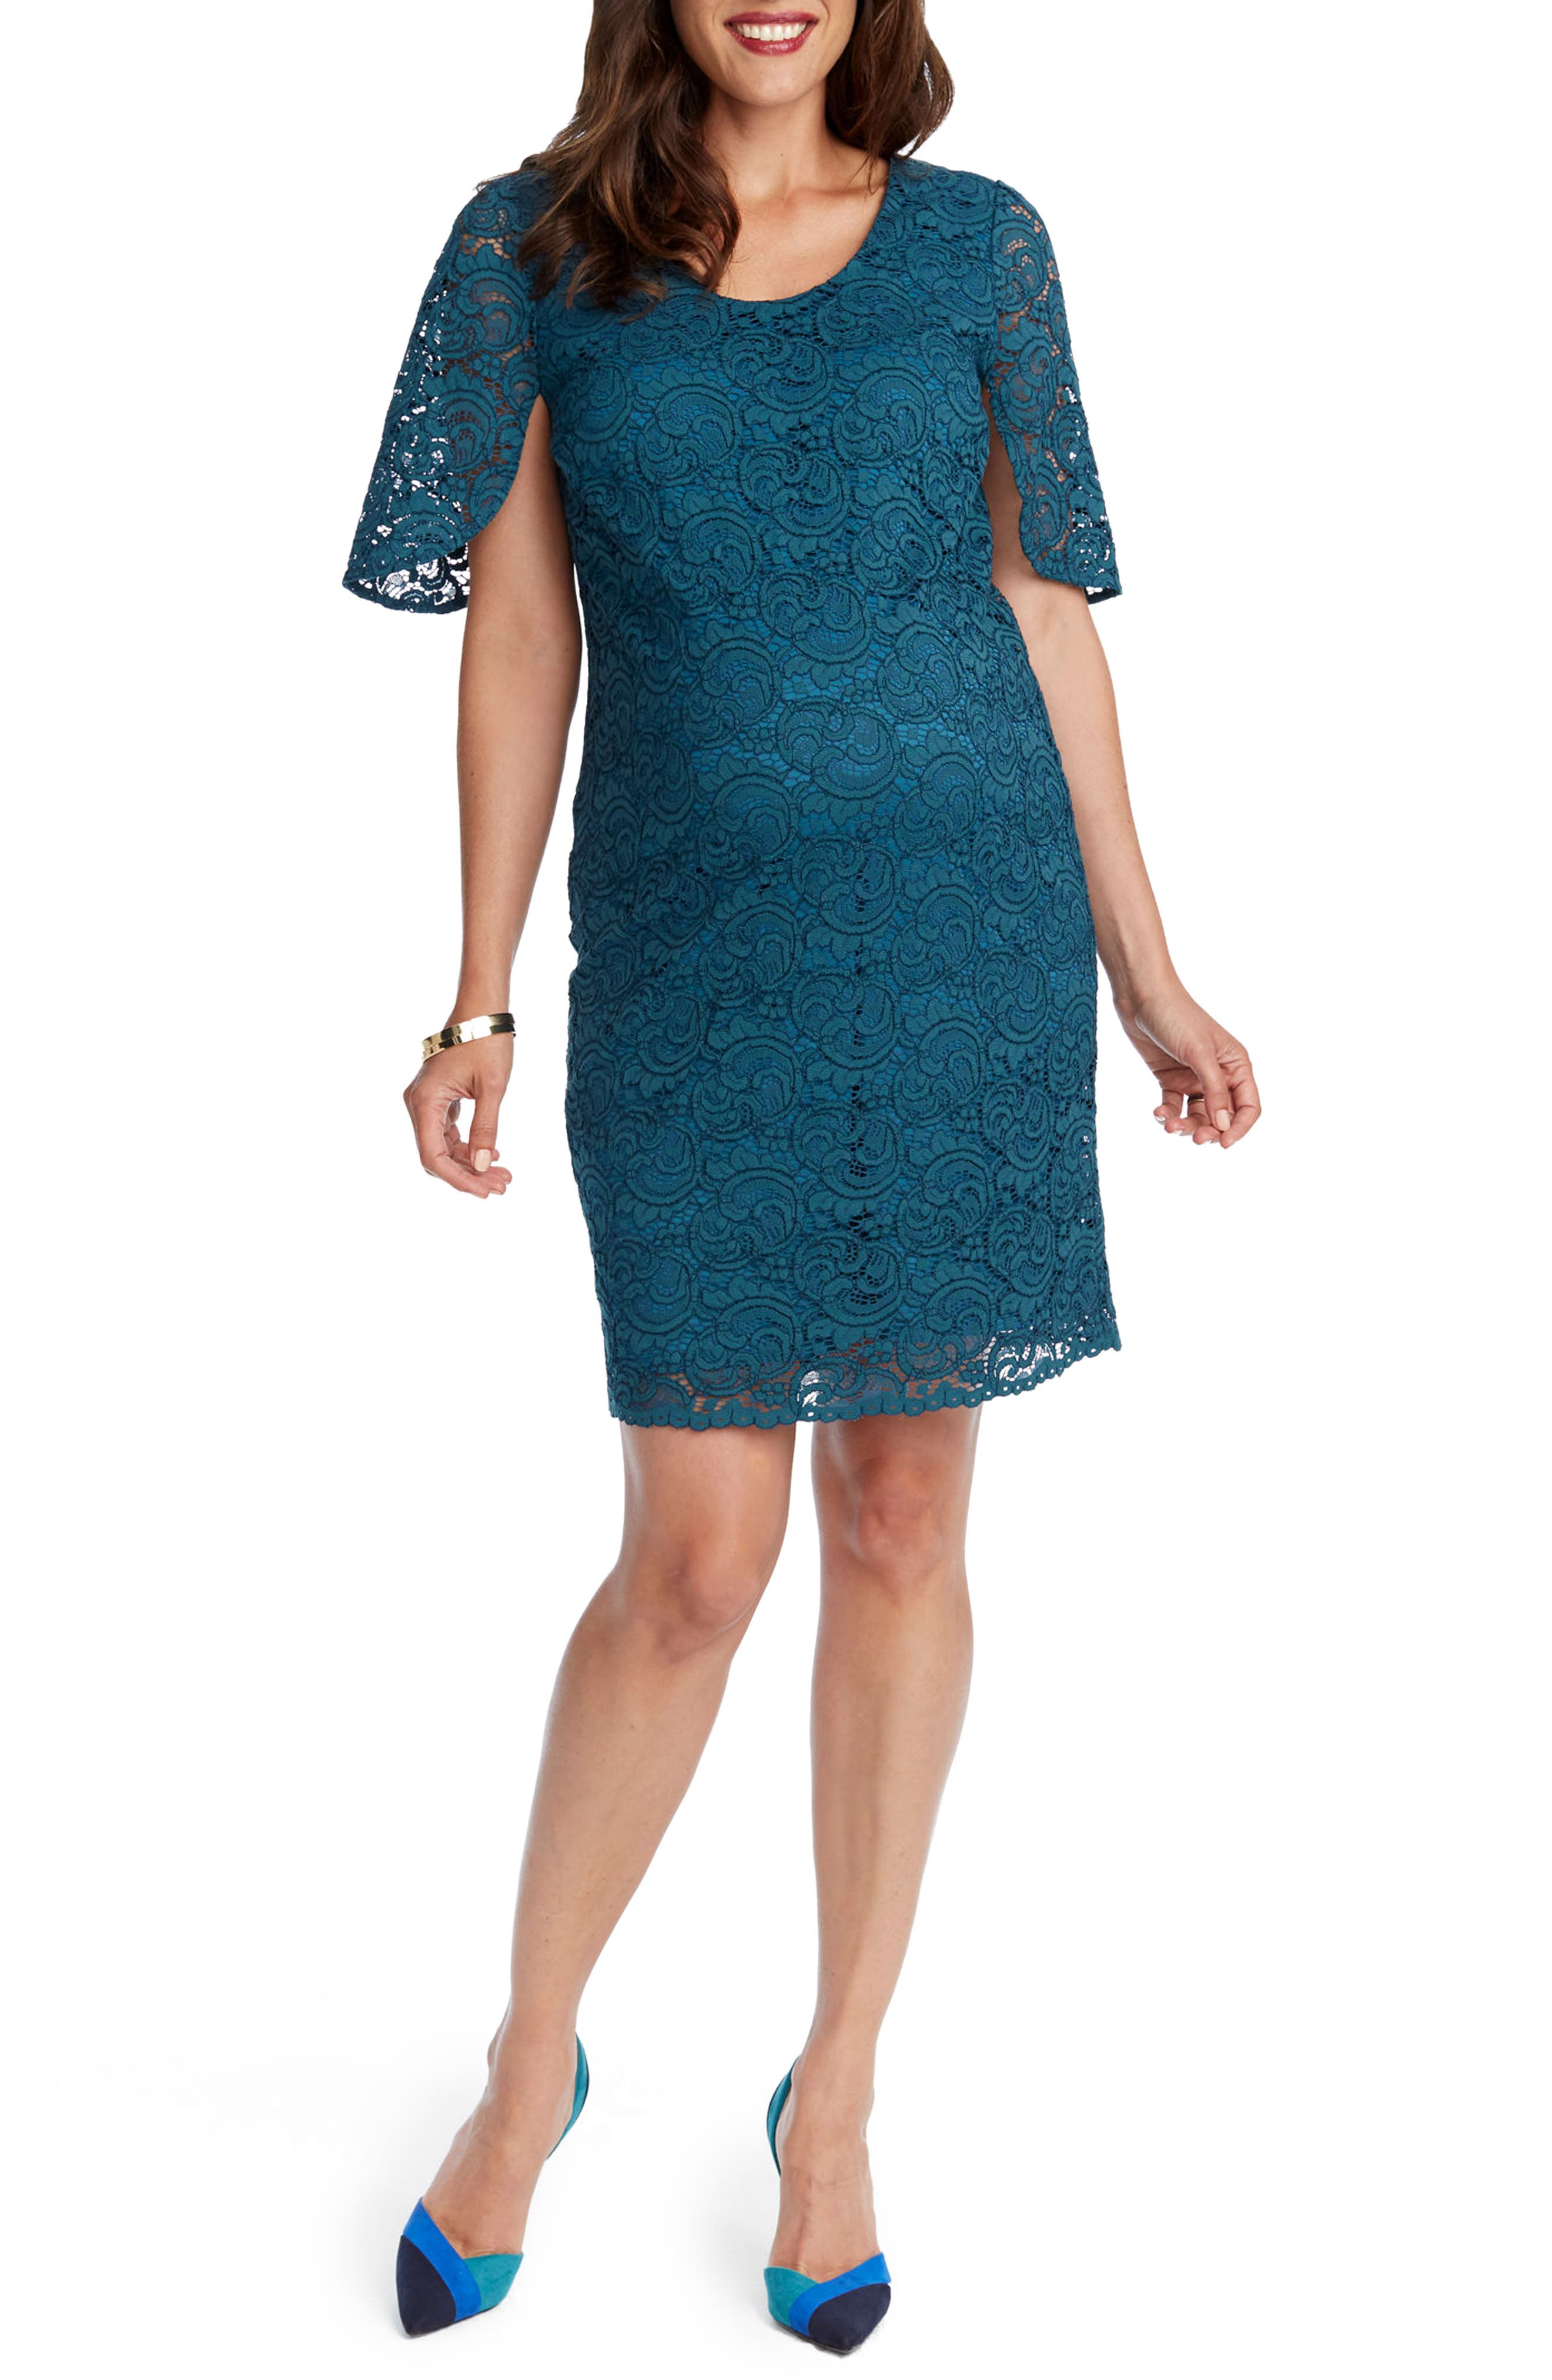 Rosie Pope Lainey Lace Maternity Sheath Dress